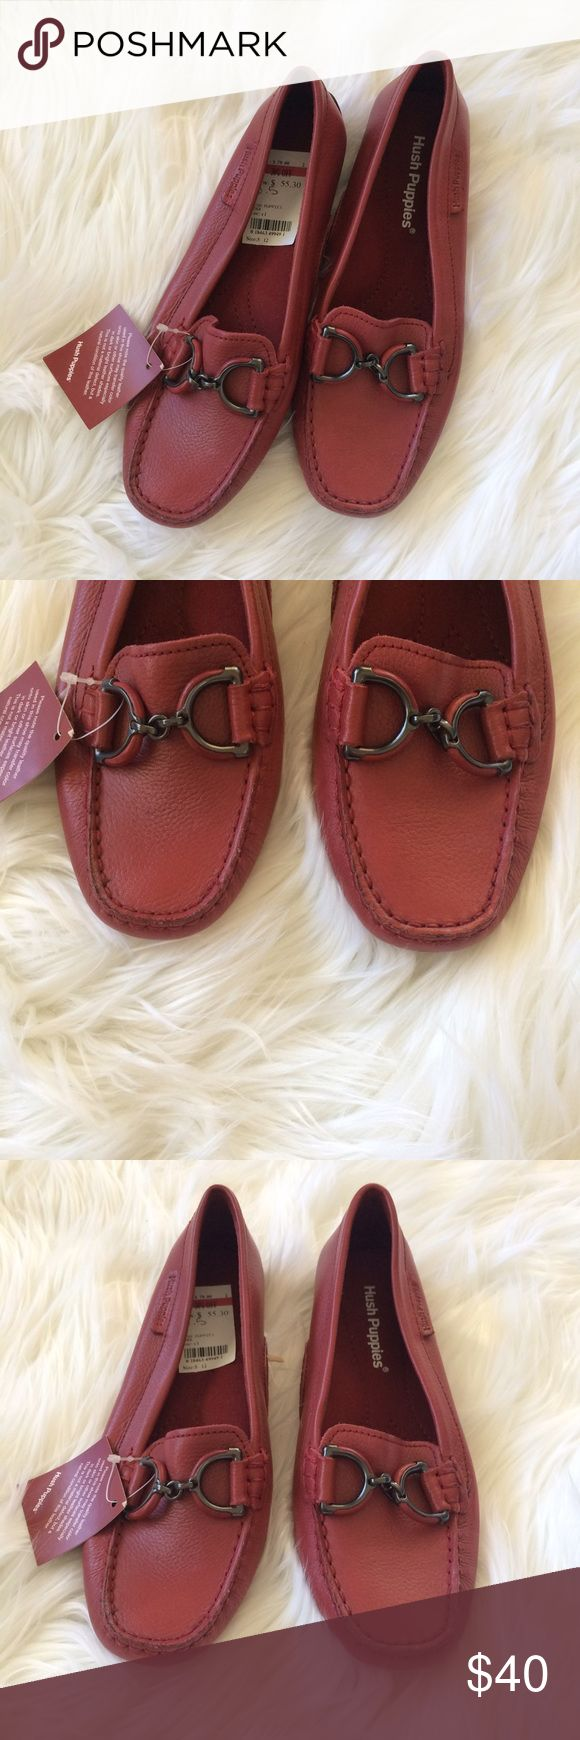 SALE ❣️ Hush Puppies Loafers • NWT Hush Puppies Loafers Hush Puppies Shoes Flats & Loafers